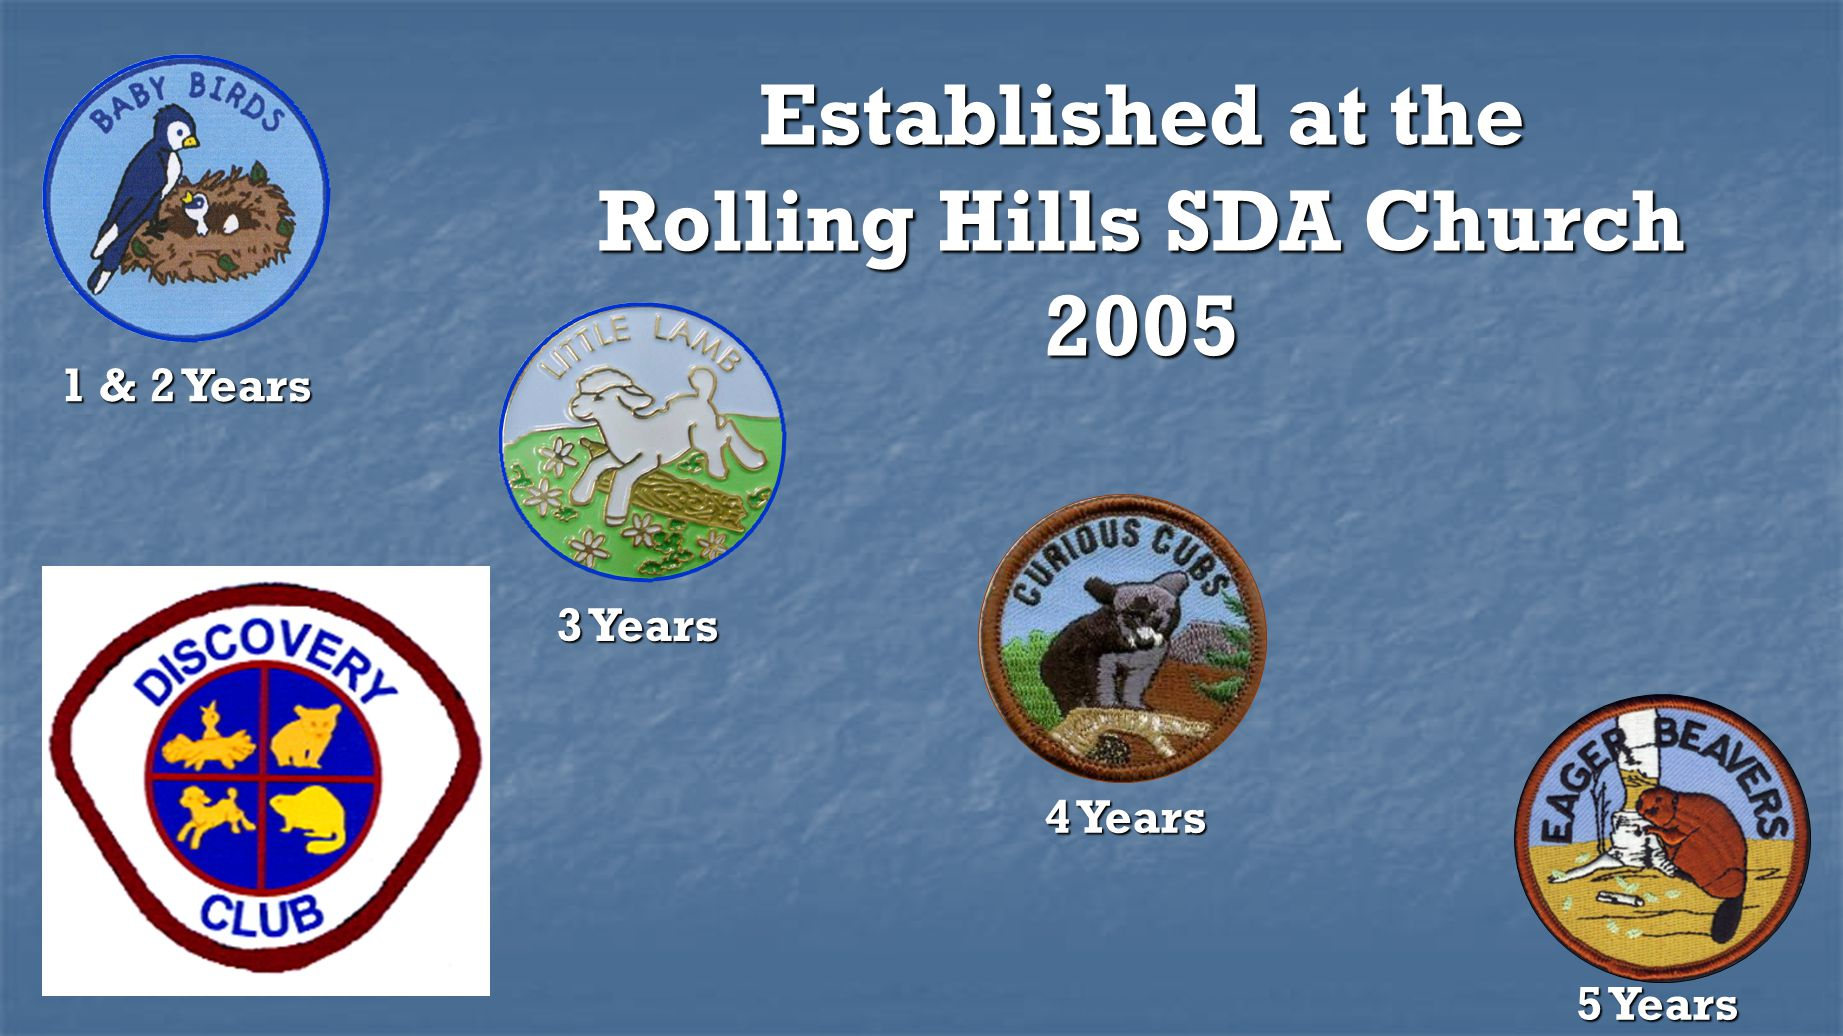 Established at the Rolling Hills SDA Church 2005